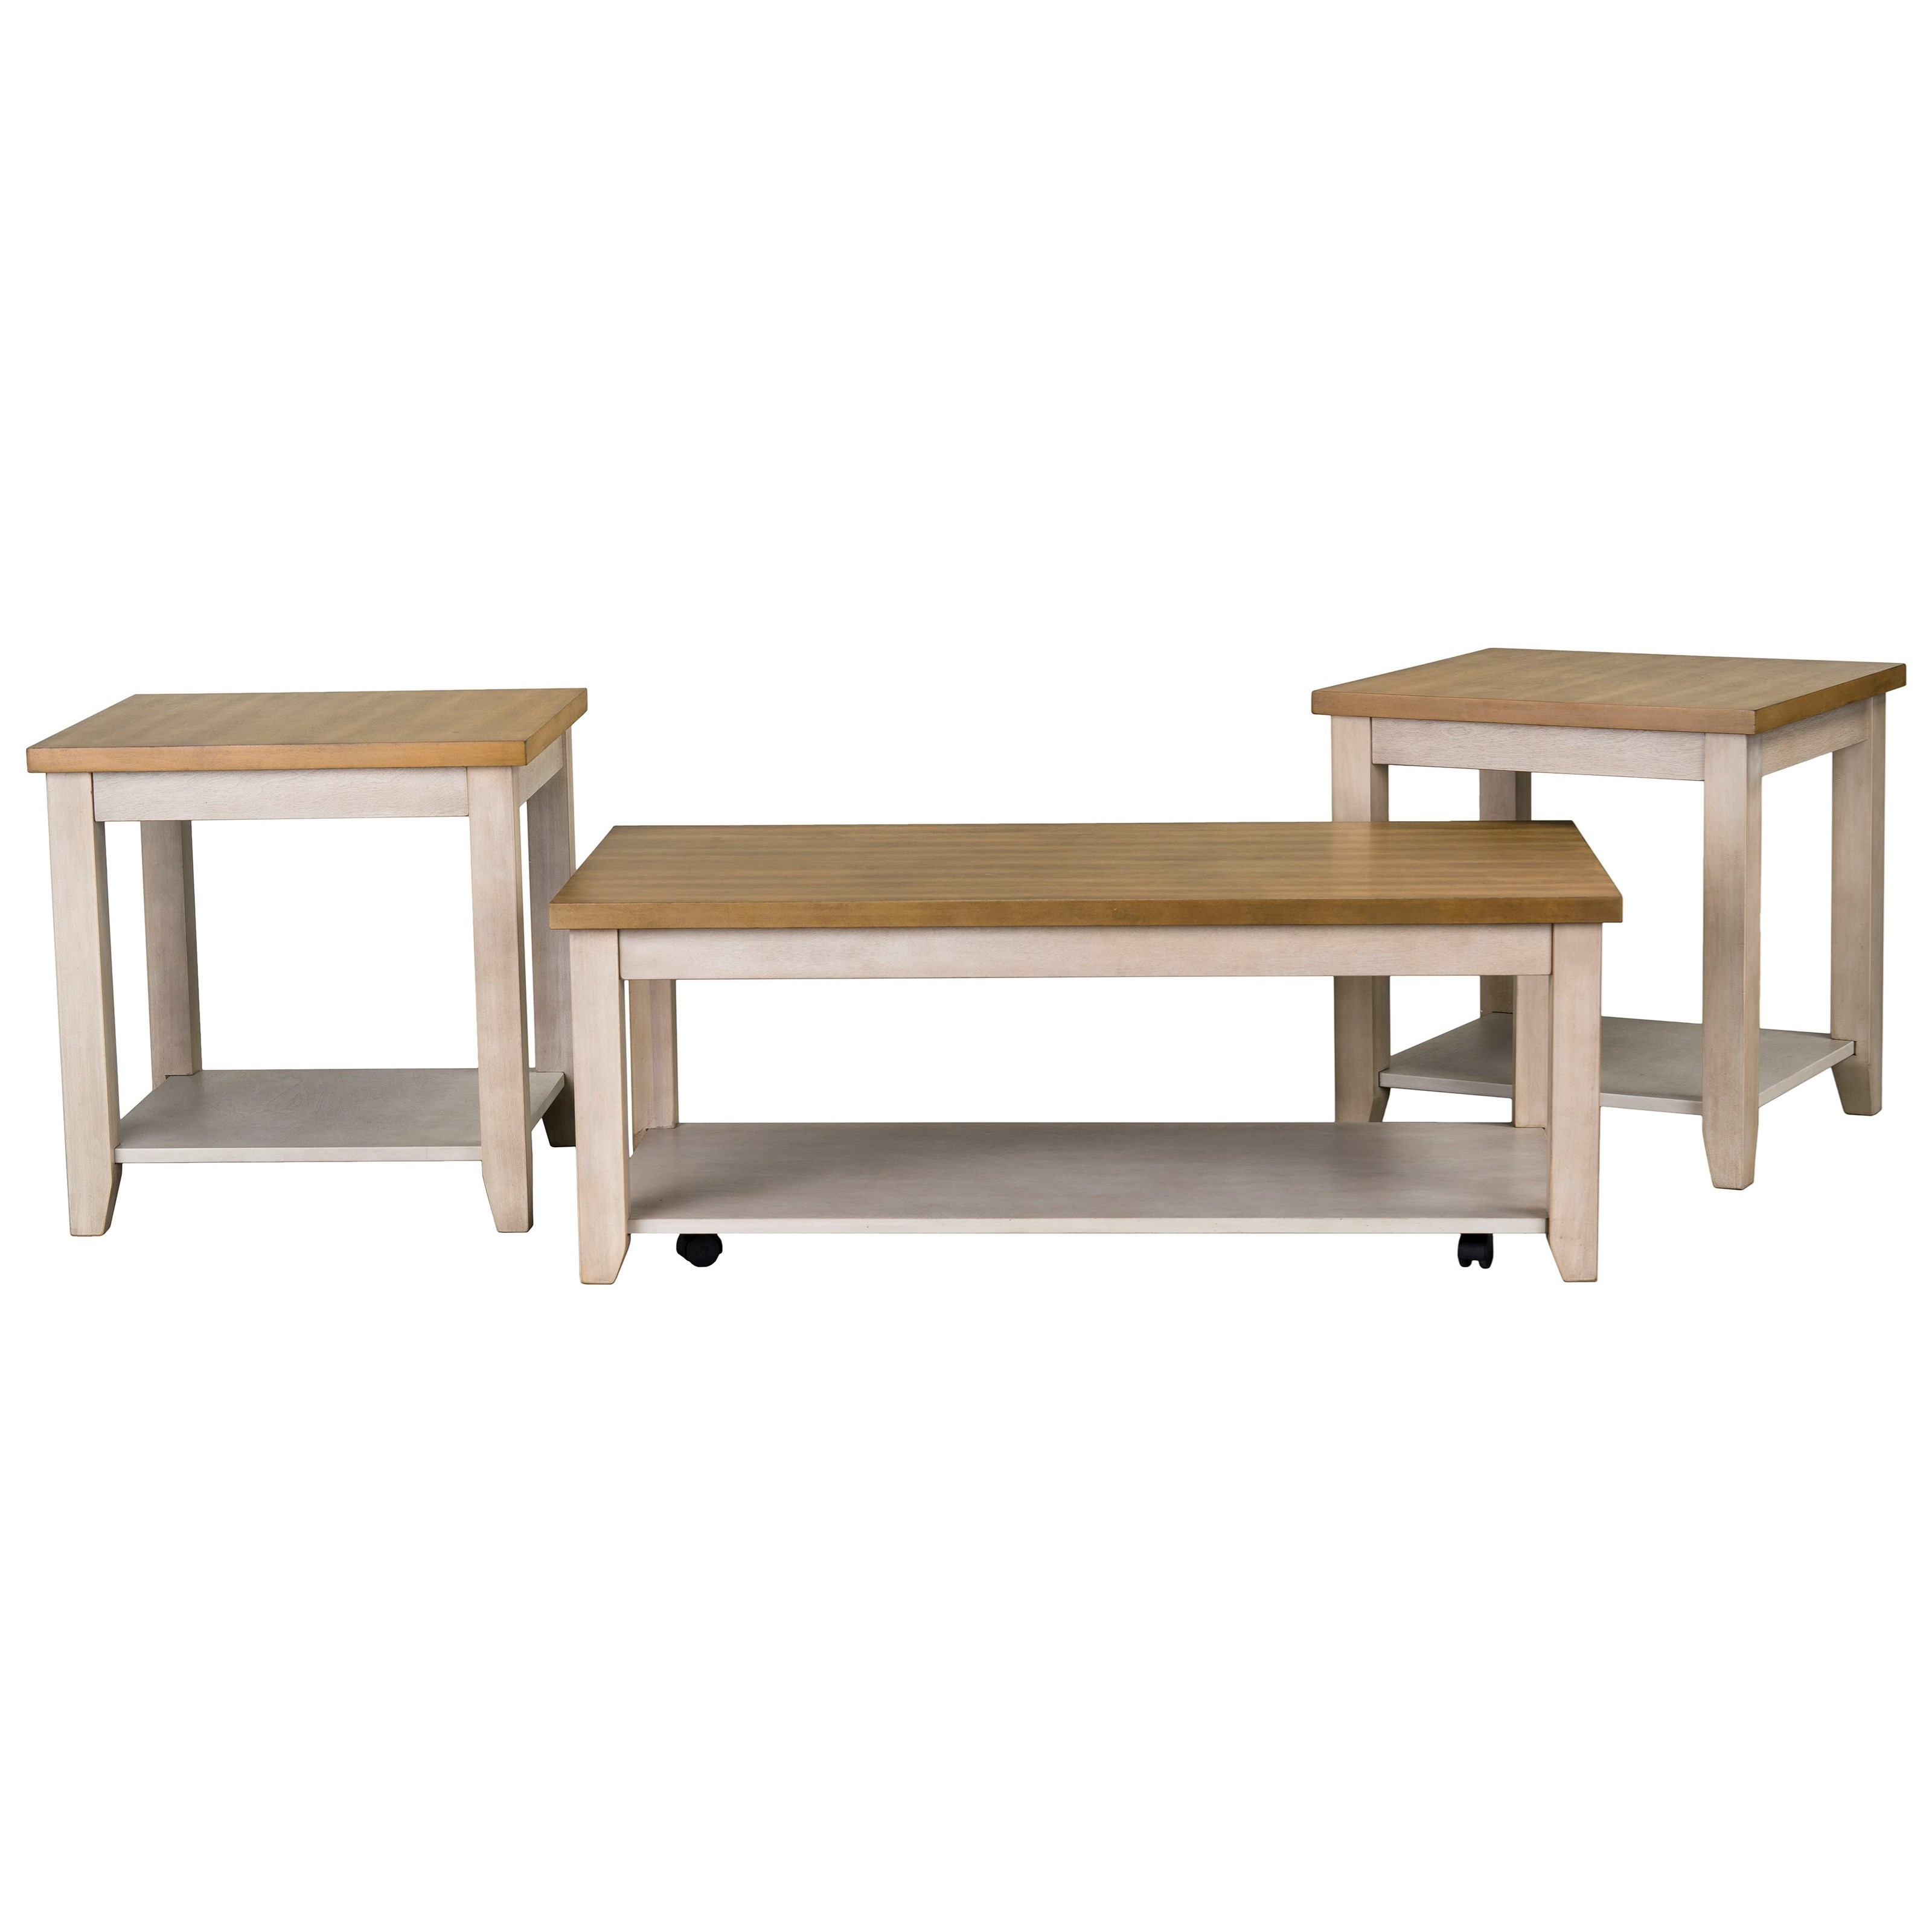 Atticus Occasional Table Group by Standard Furniture at Rooms for Less